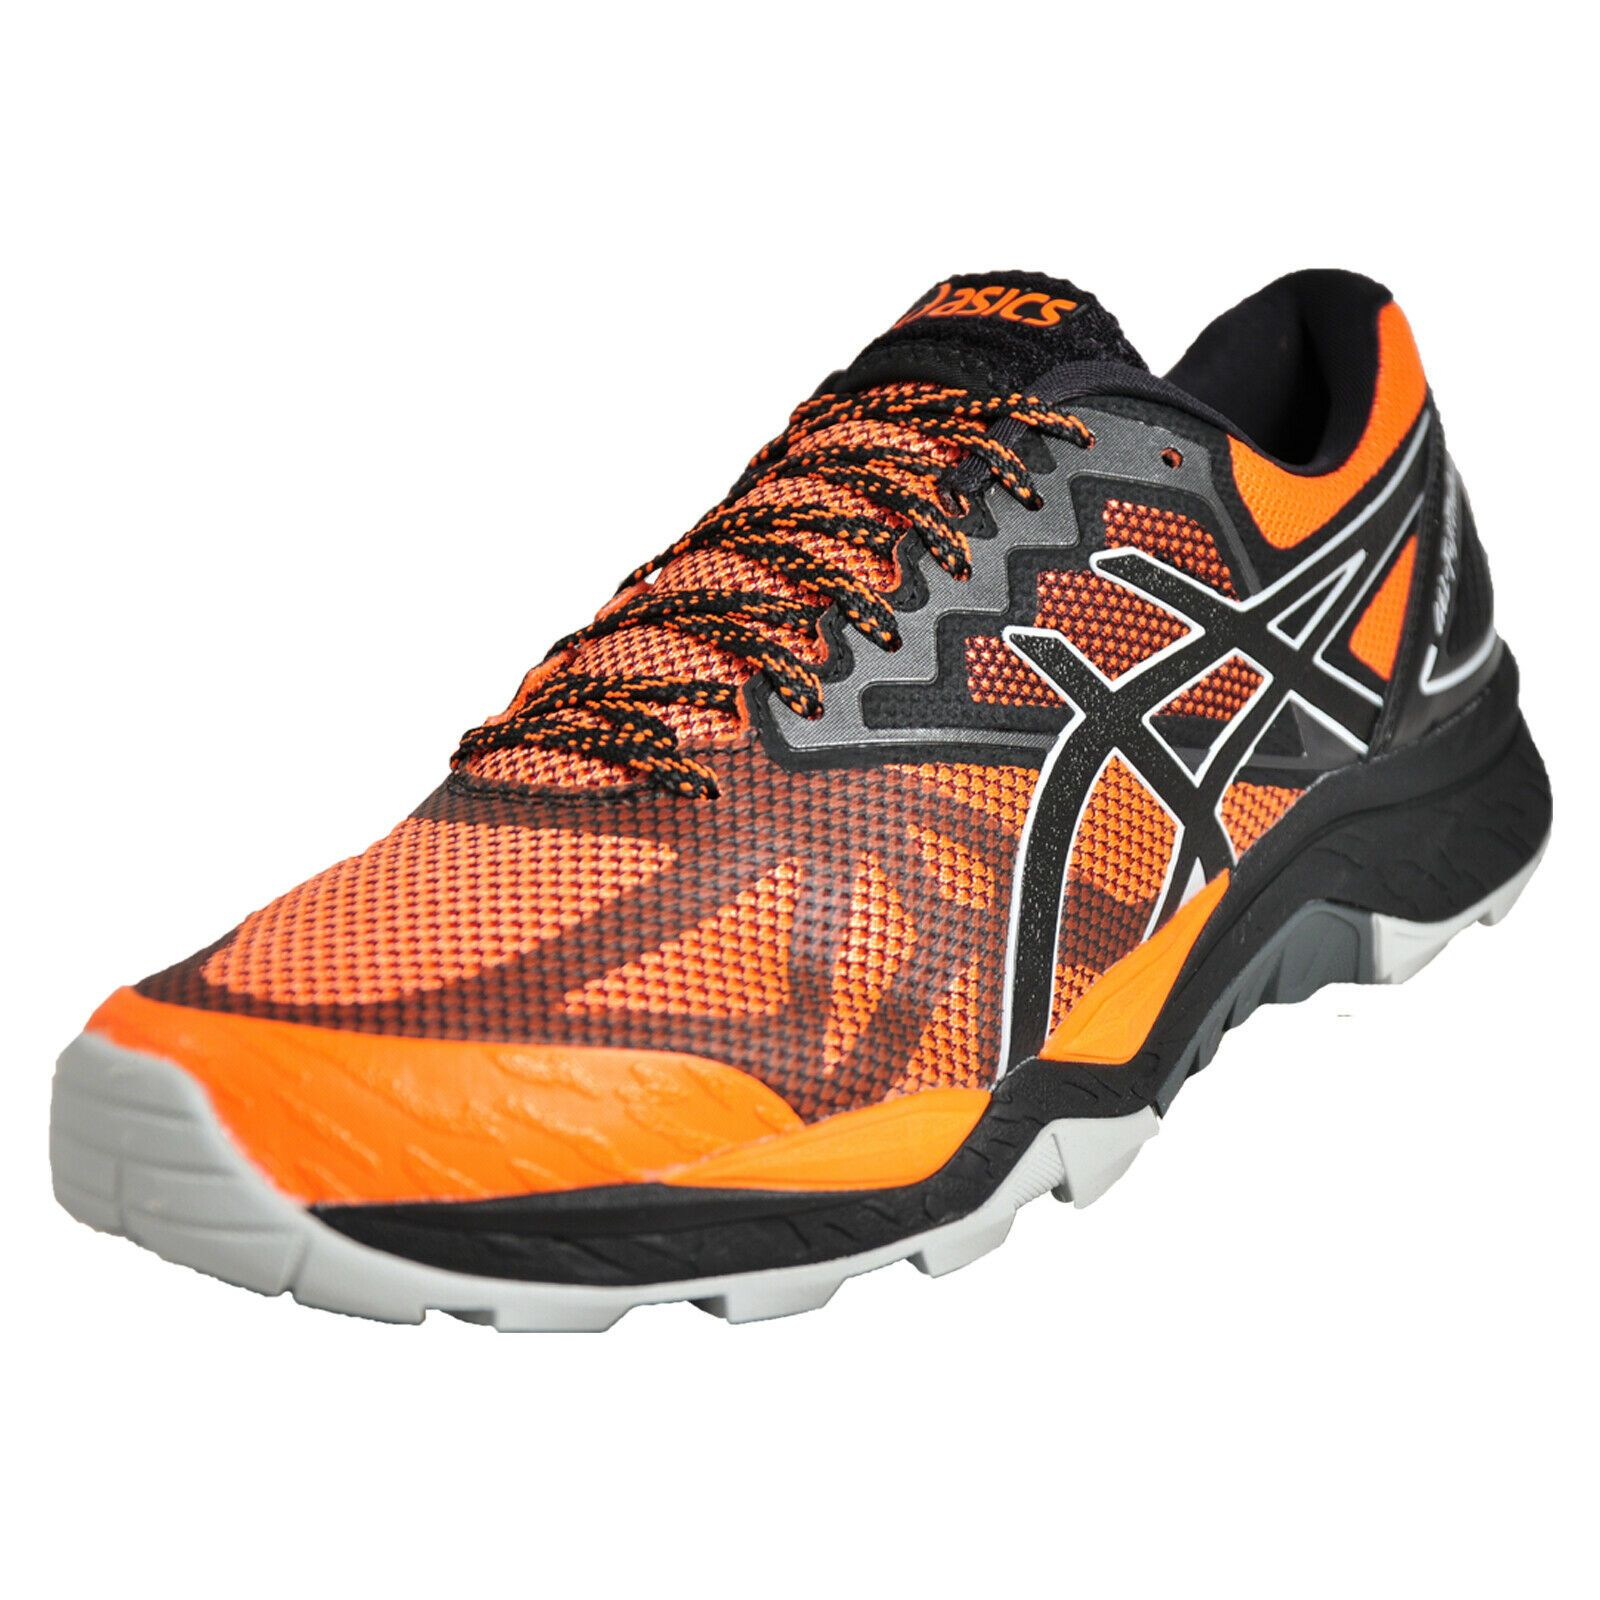 fc5d89aef Asics Gel FujiTrabuco 6 Mens All Terrain High Performance Trail Running  Shoes Gr